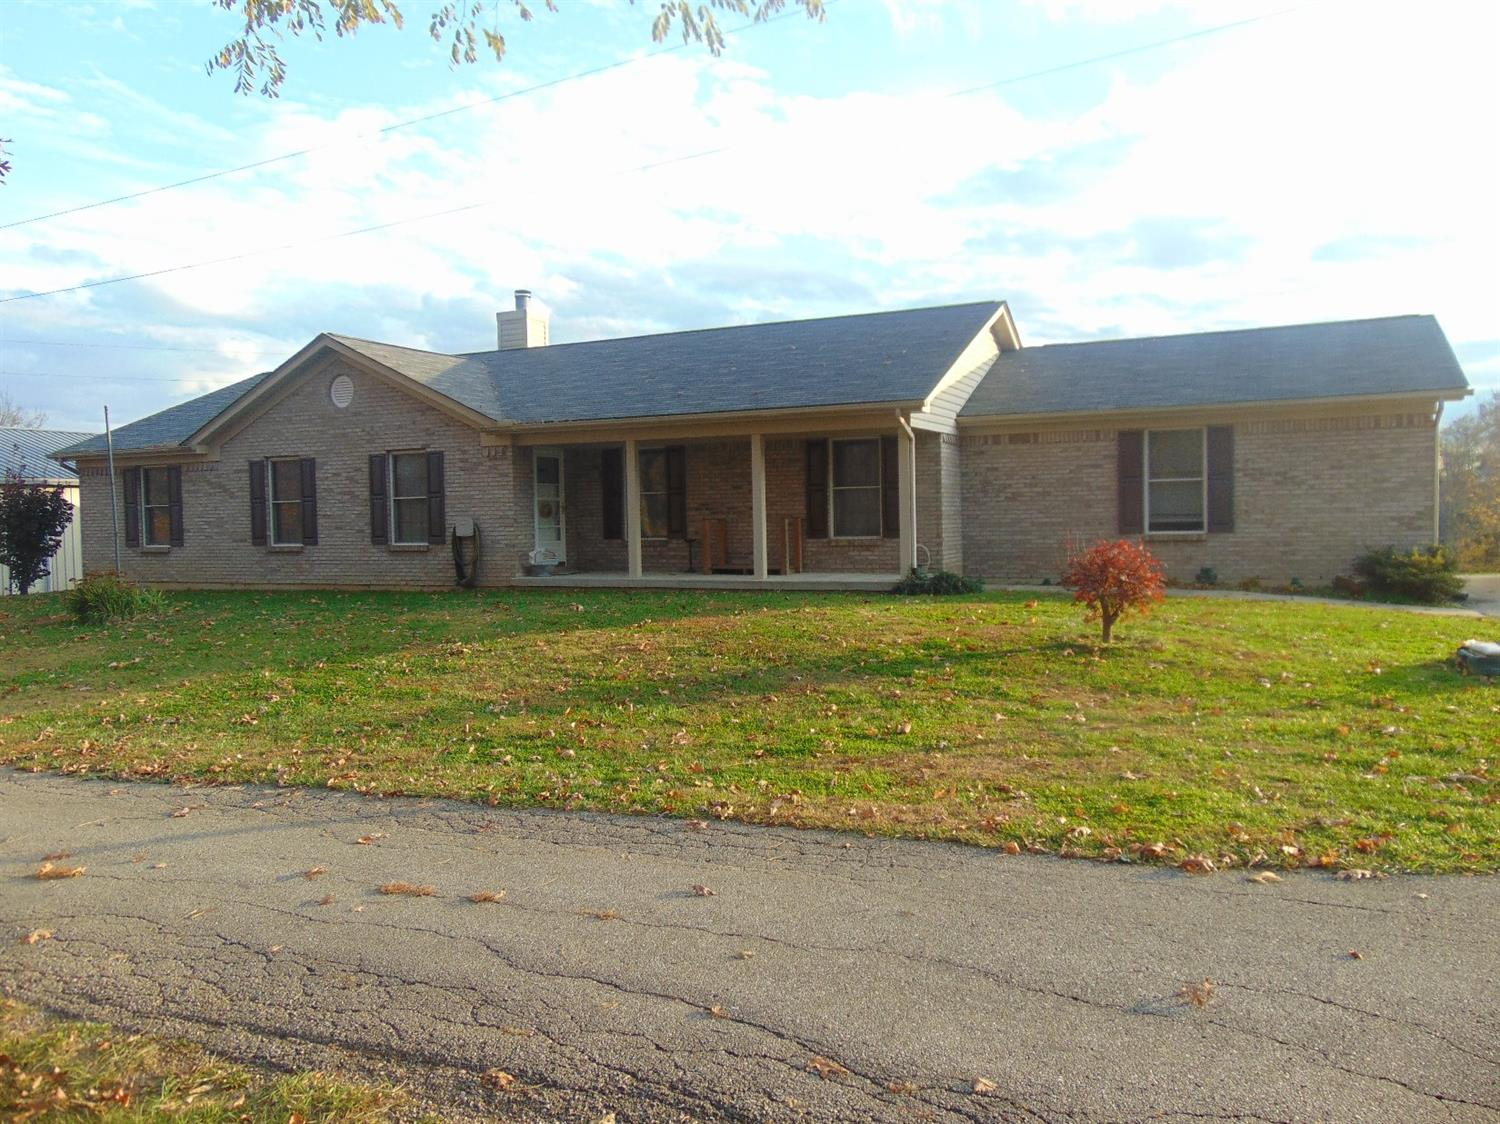 Photo 1 for 12061 Riggs Rd Independence, KY 41051